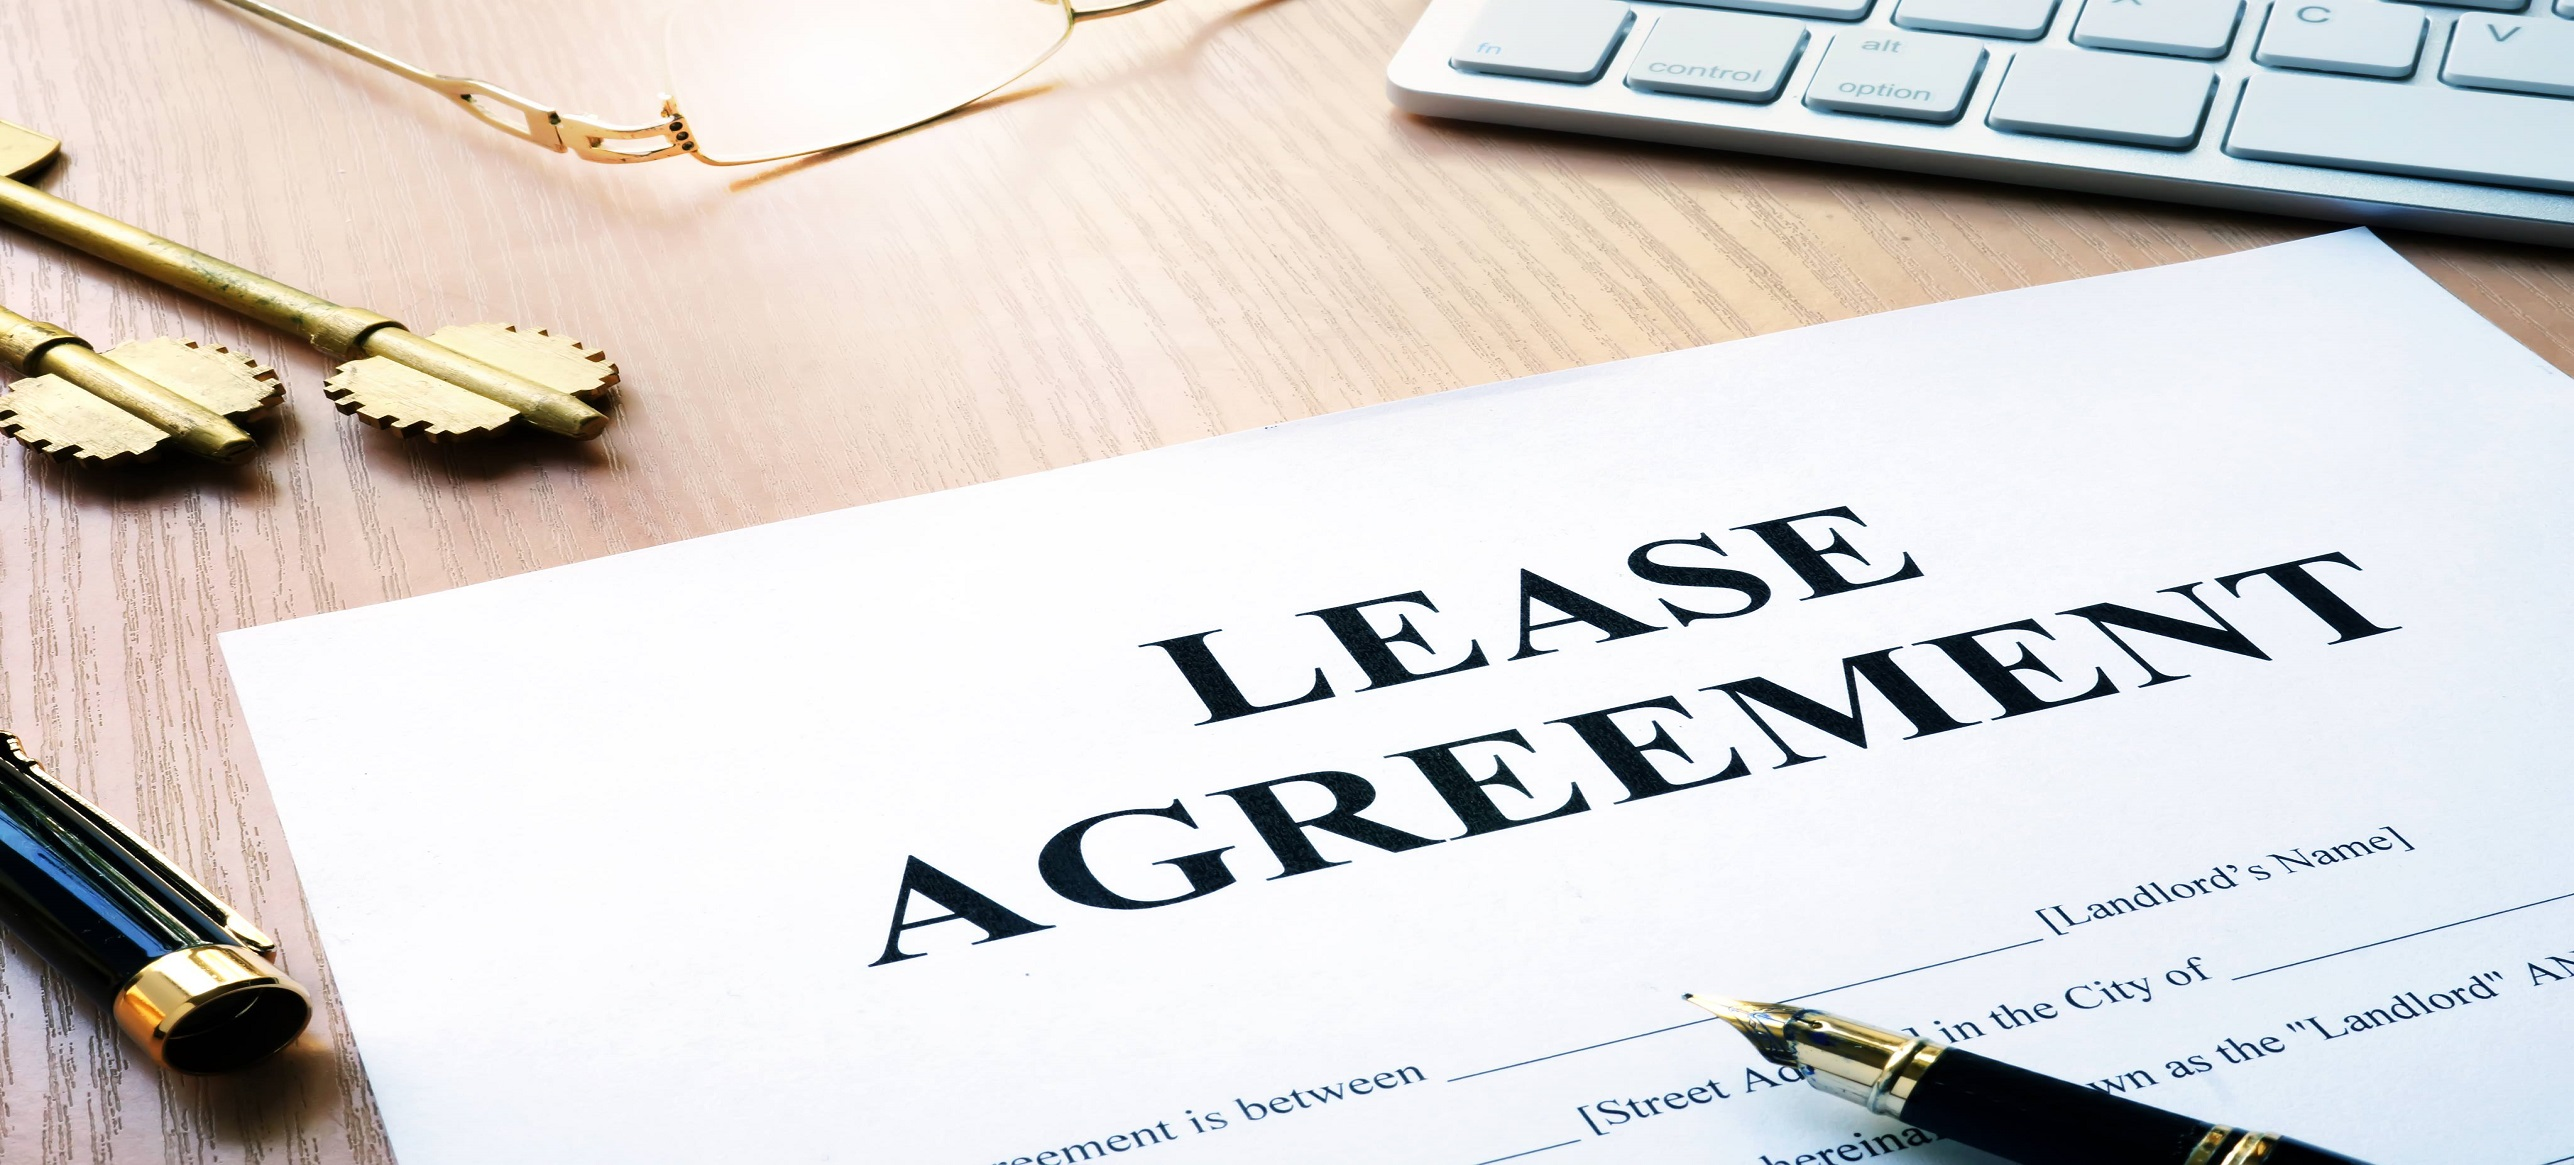 Photo to illustrate article https://www.lkshields.ie/images/uploads/news/Lease-Resized.jpg.